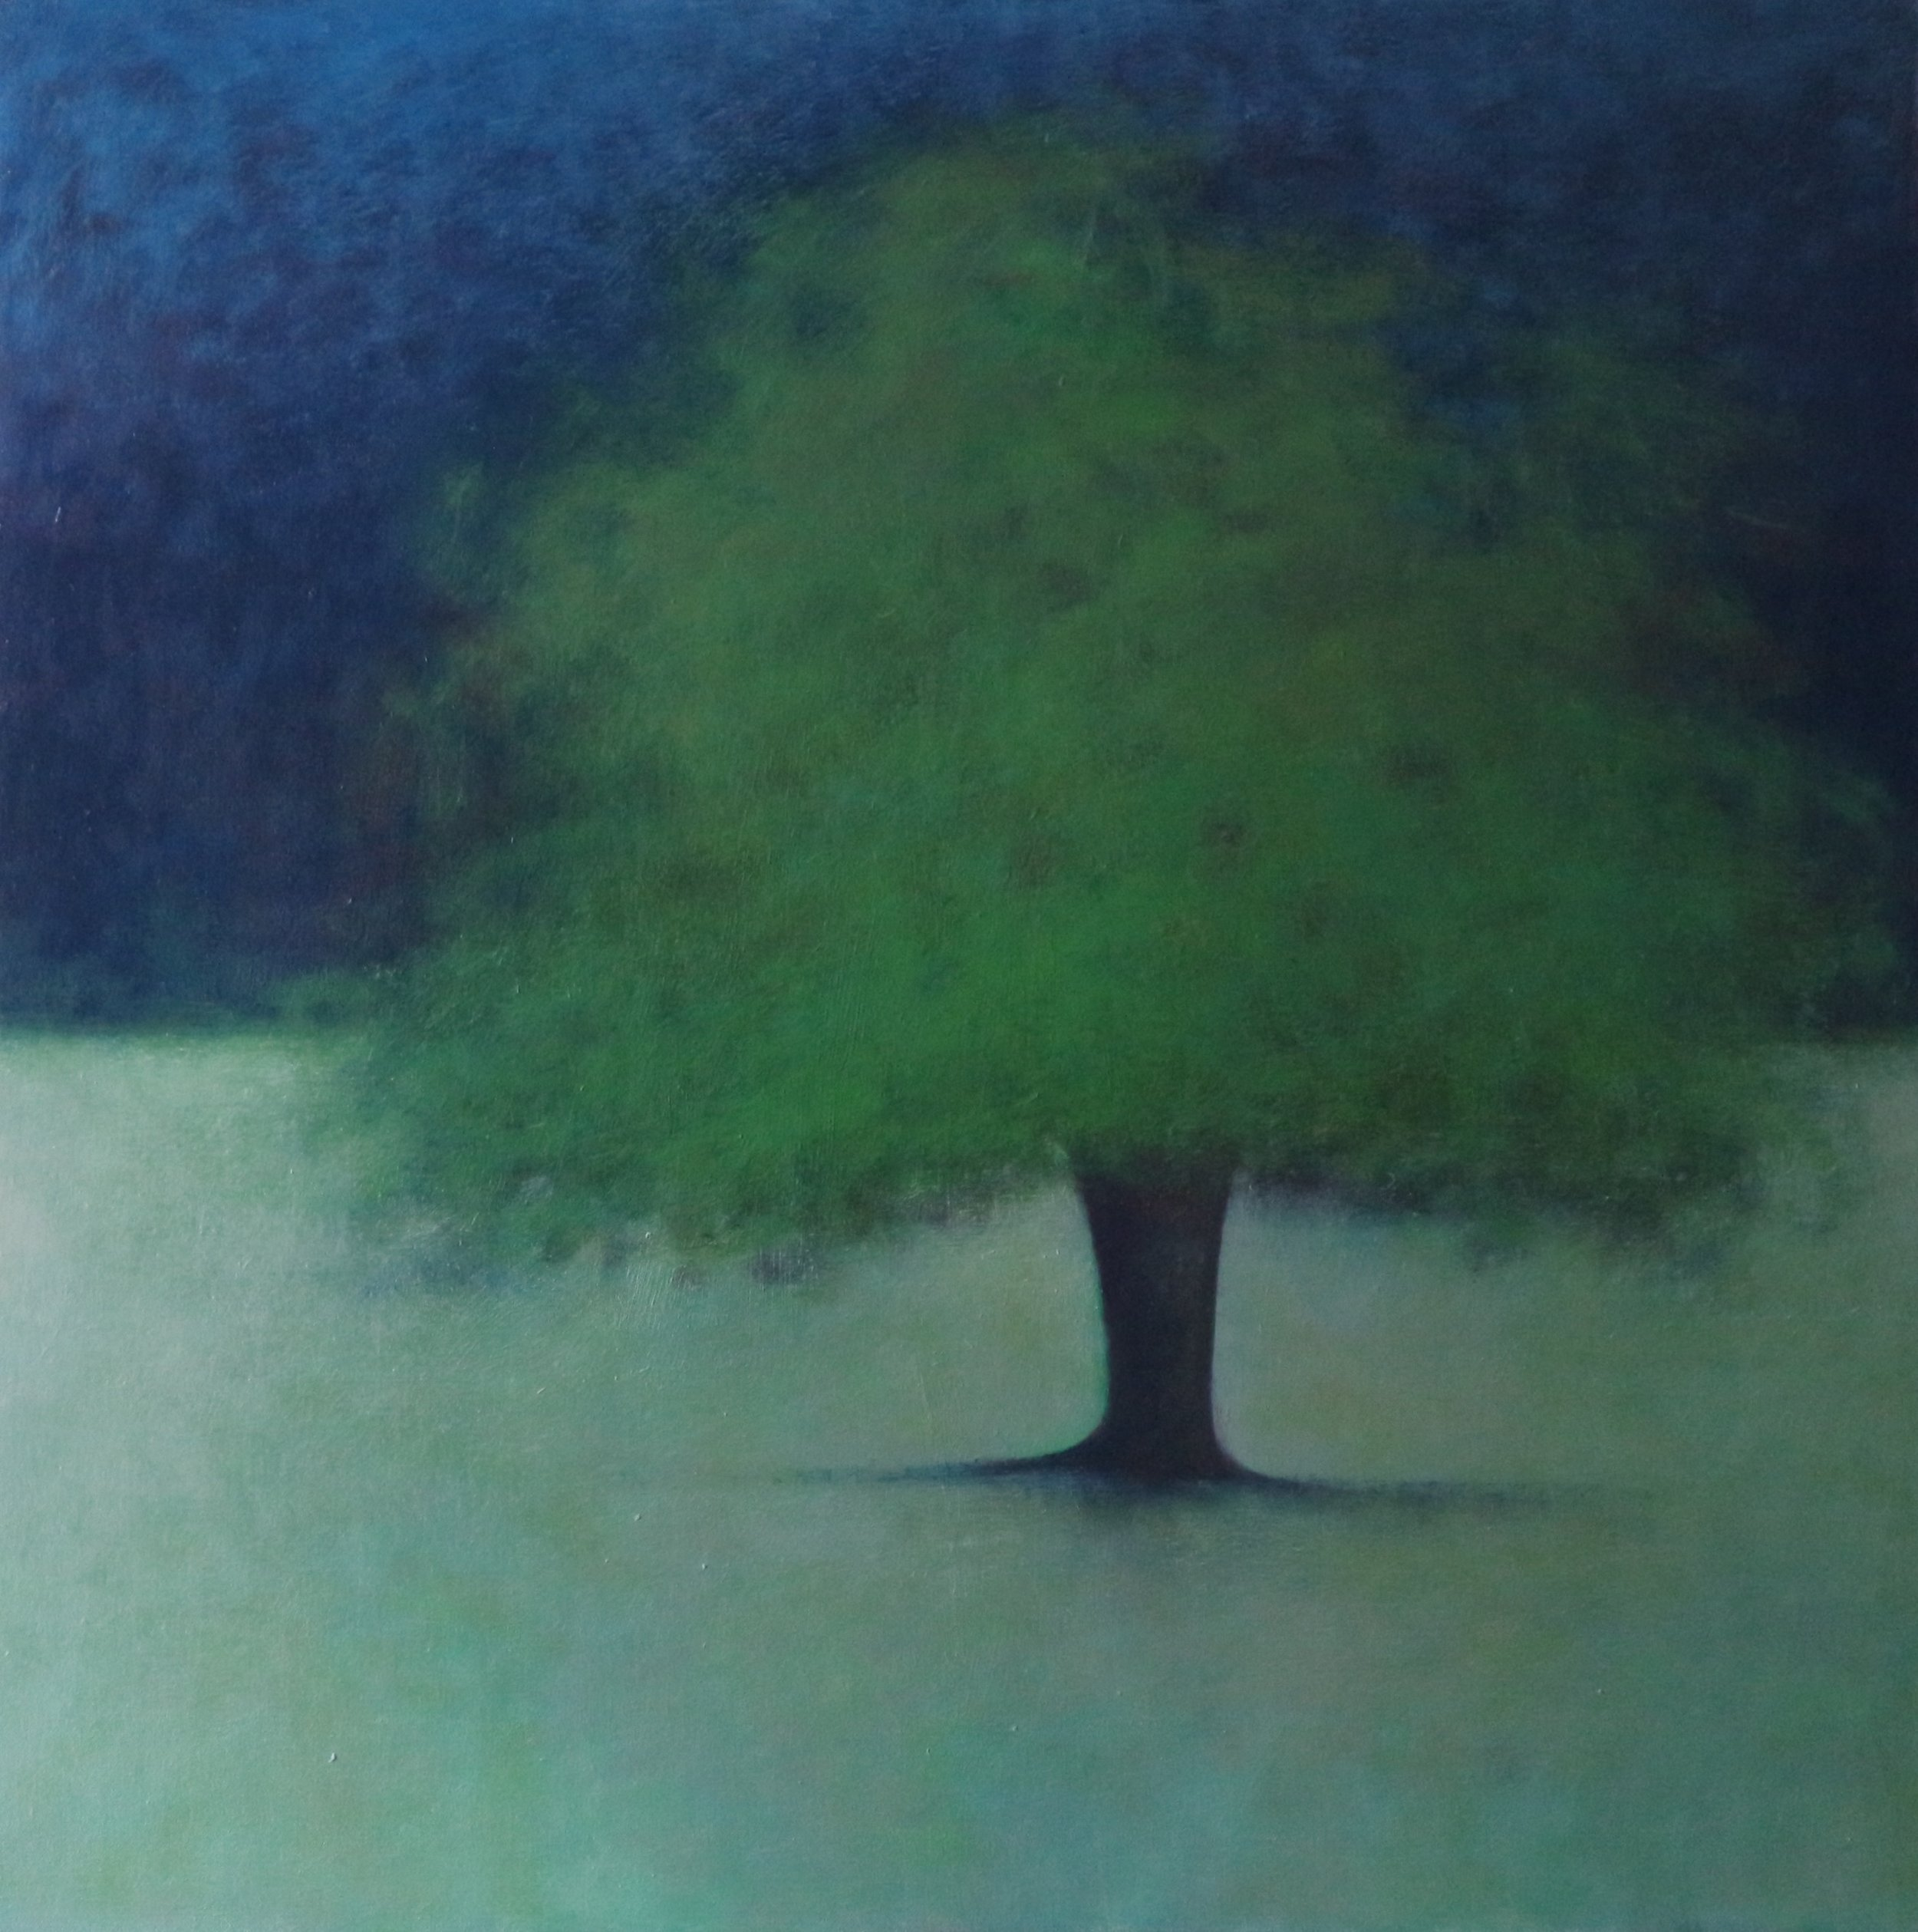 Artist: Claire Beattie  Title: Midsummer Verdigris  Size: 70 x 70 cm  Medium: Oil on canvas  Price: £750   Buy Now